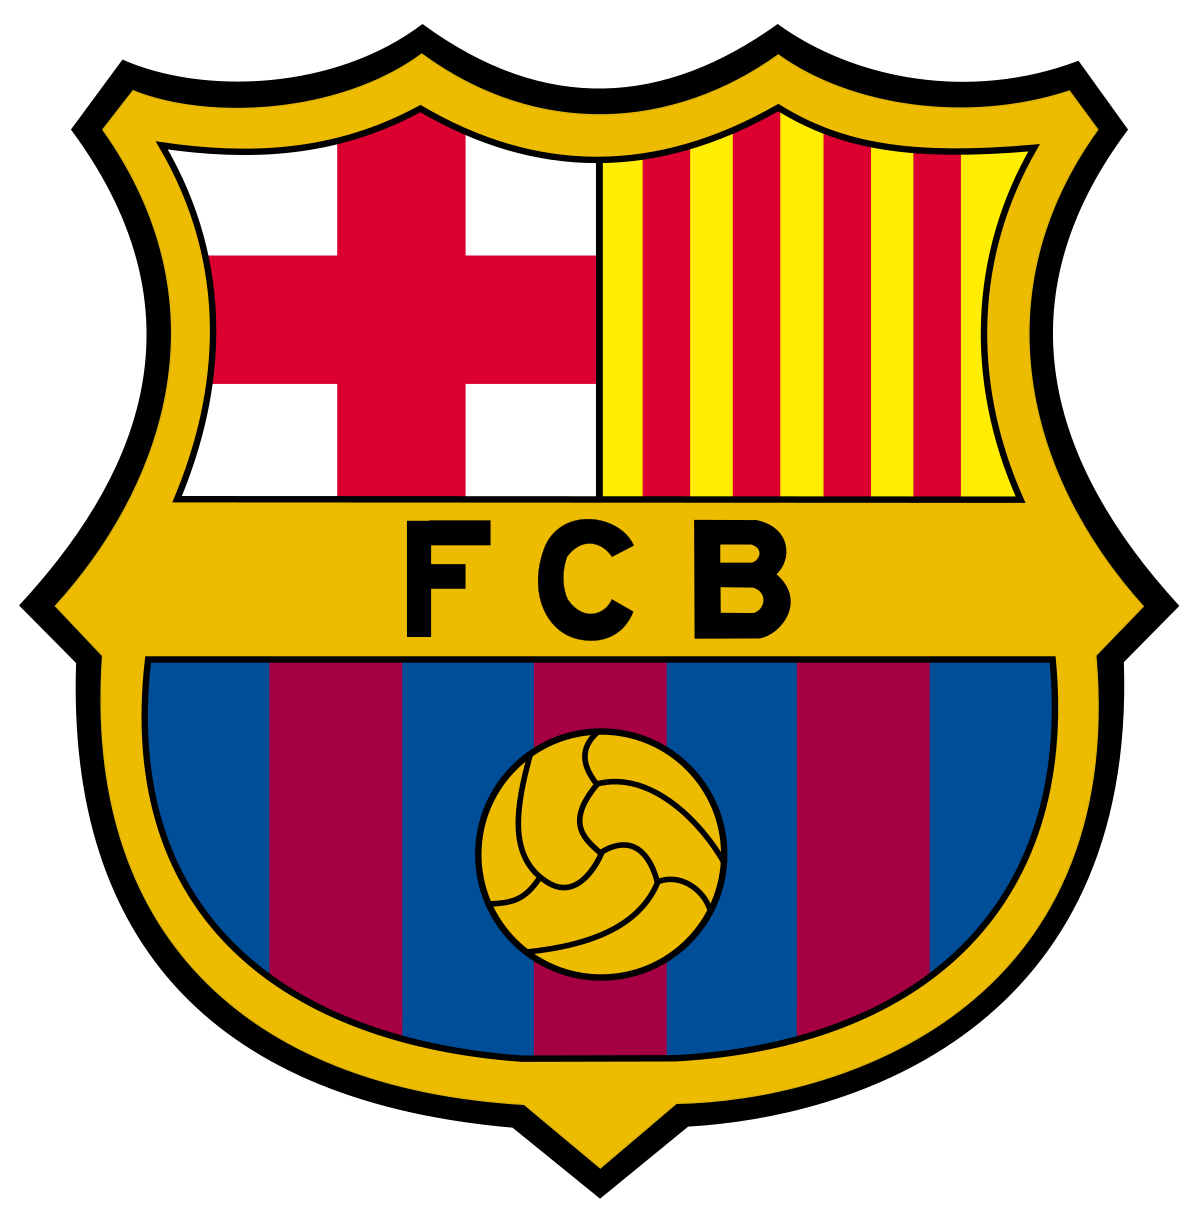 FC Barcelona are one of the most successful European football clubs of all time